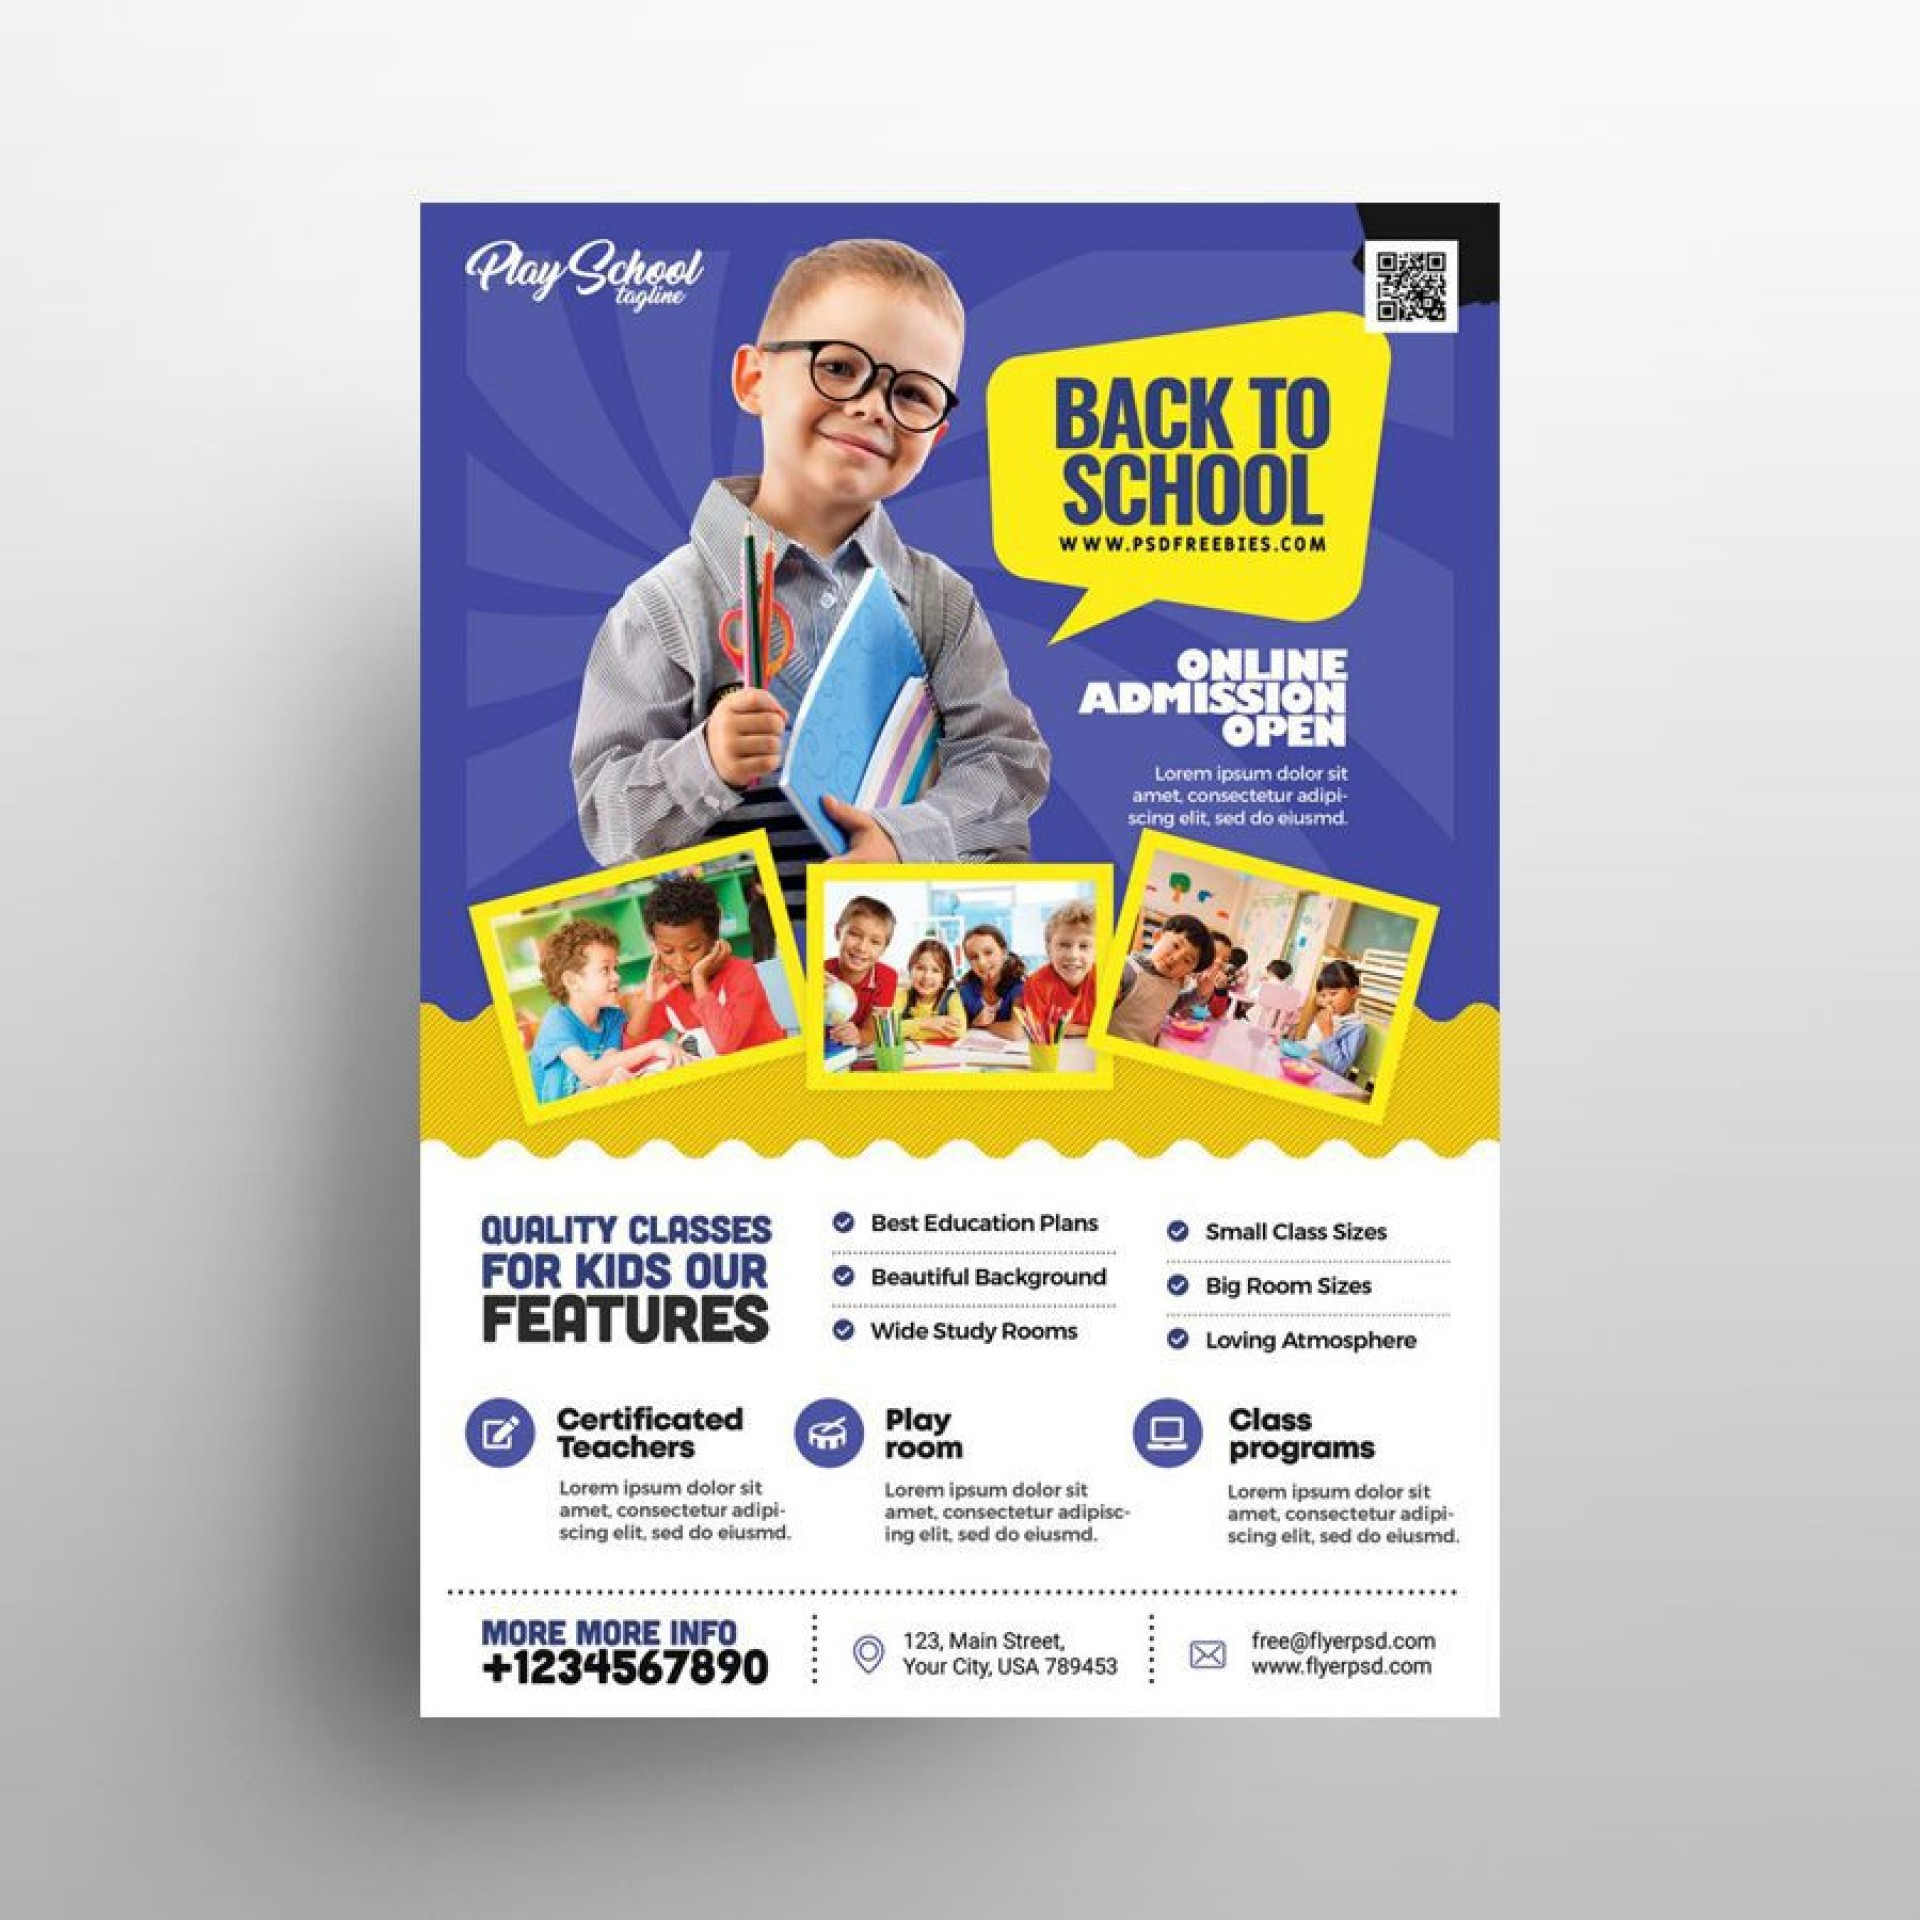 009 Fascinating Free School Flyer Template Psd Picture  Brochure Download Back To1920